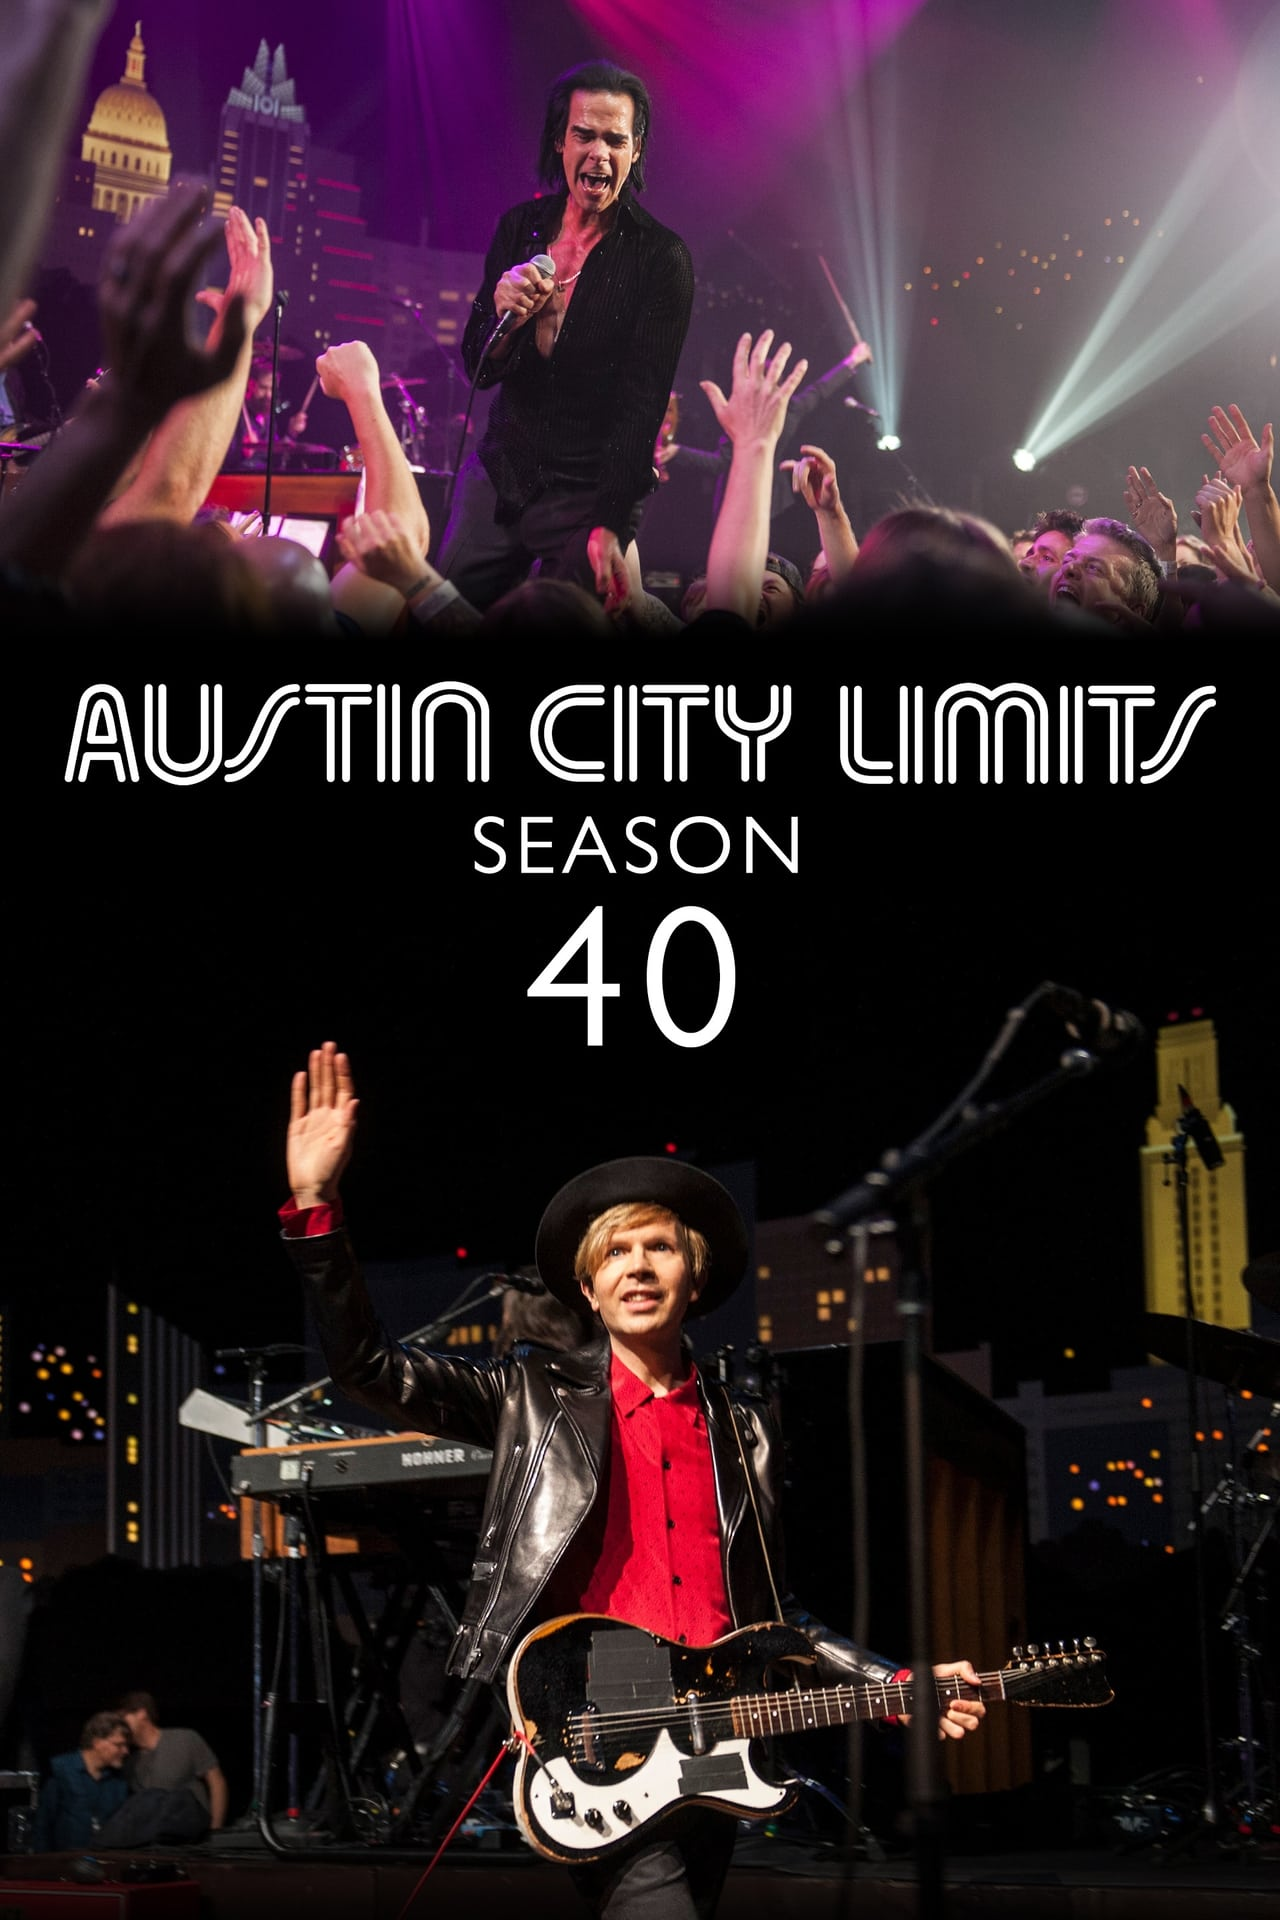 Putlocker Austin City Limits Season 40 (2014)